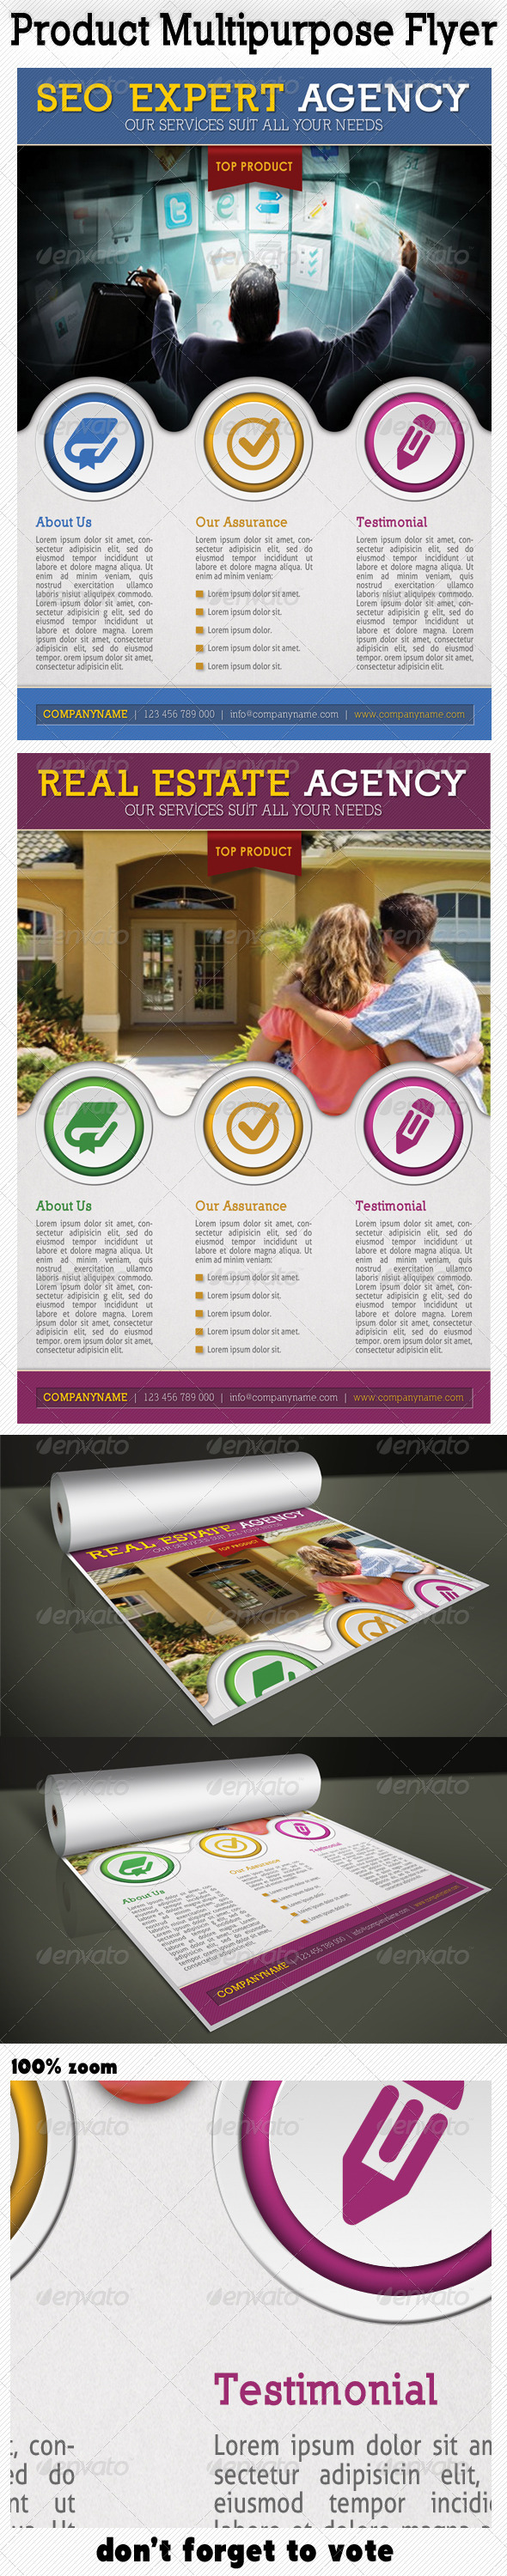 GraphicRiver Product Multipurpose Flyer 4976742